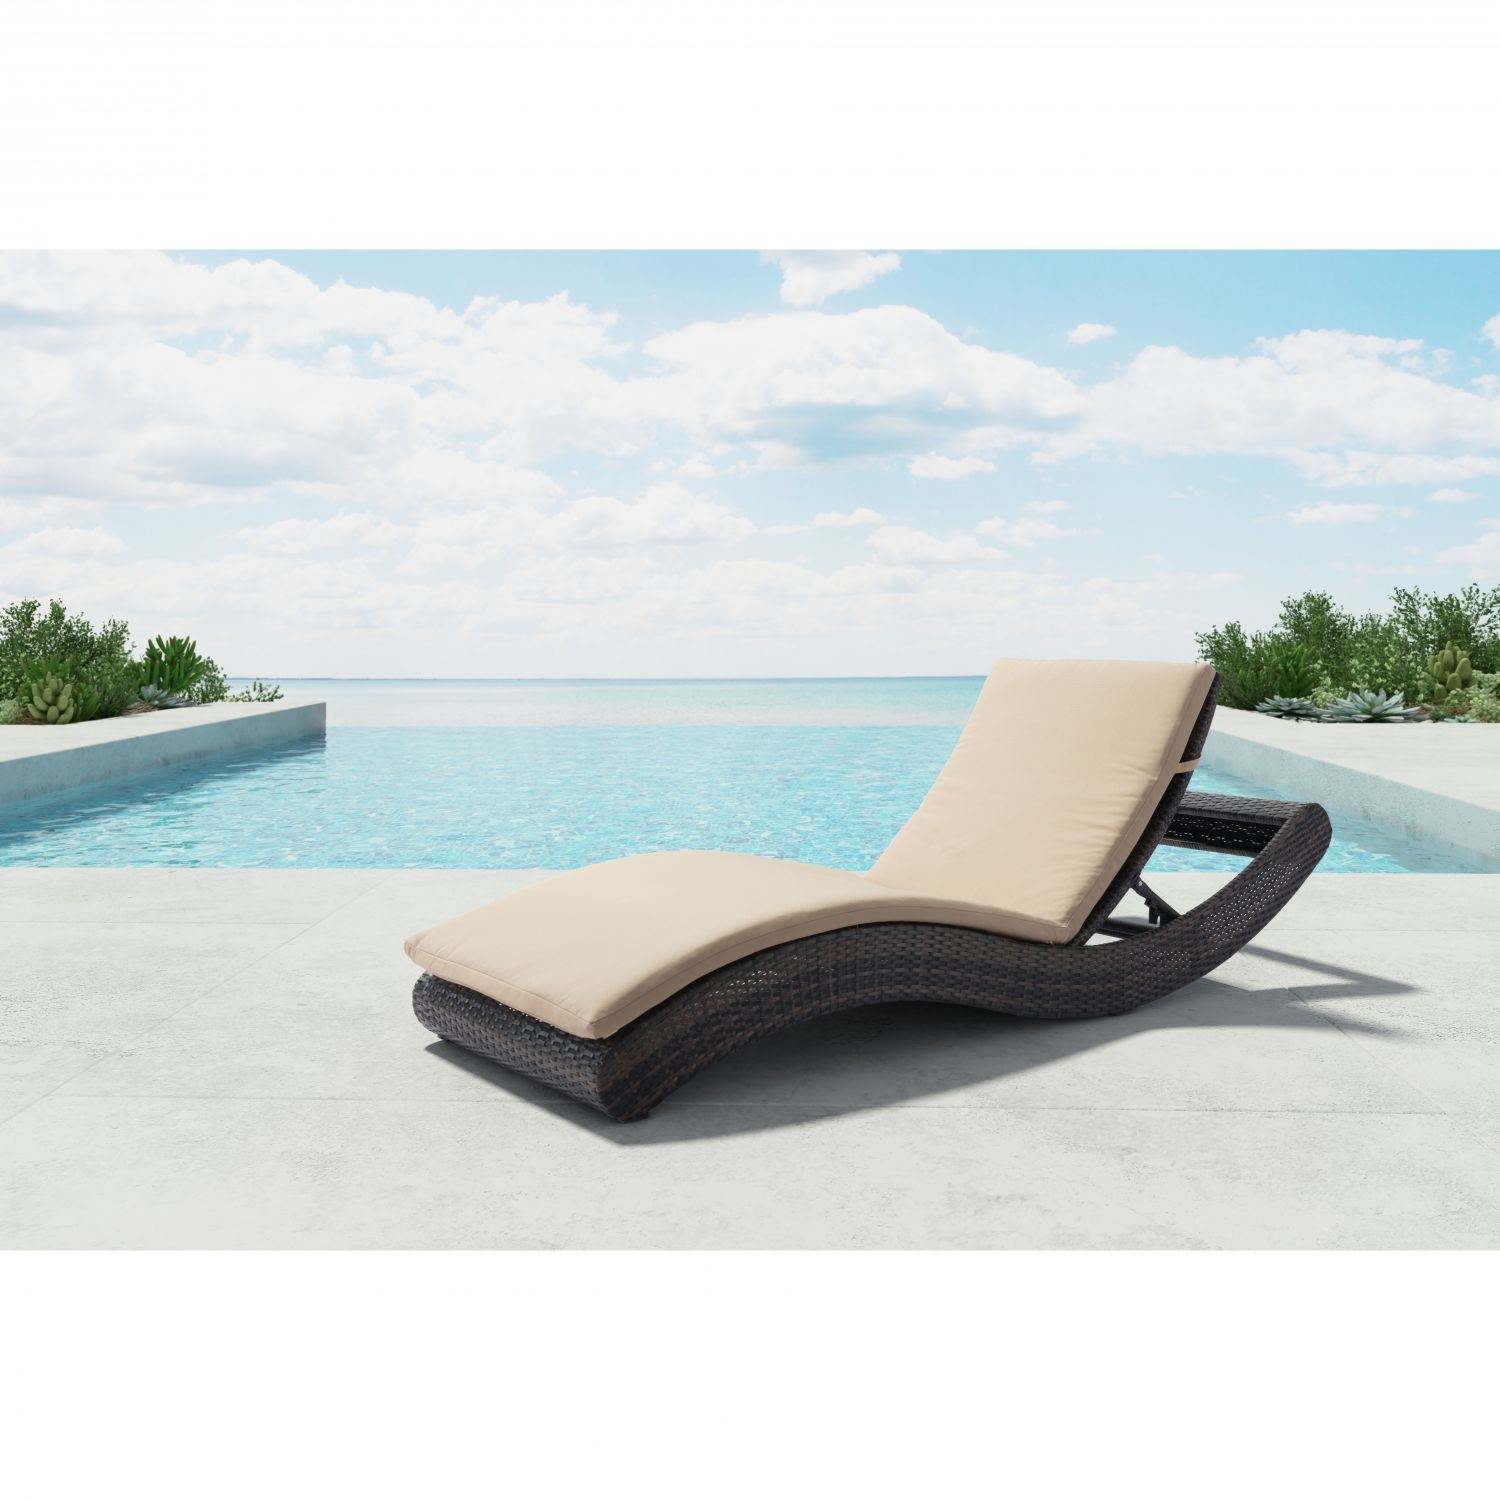 Pamelon beach chaise lounge brn beige 703840 zuo modern for Beach chaise lounge